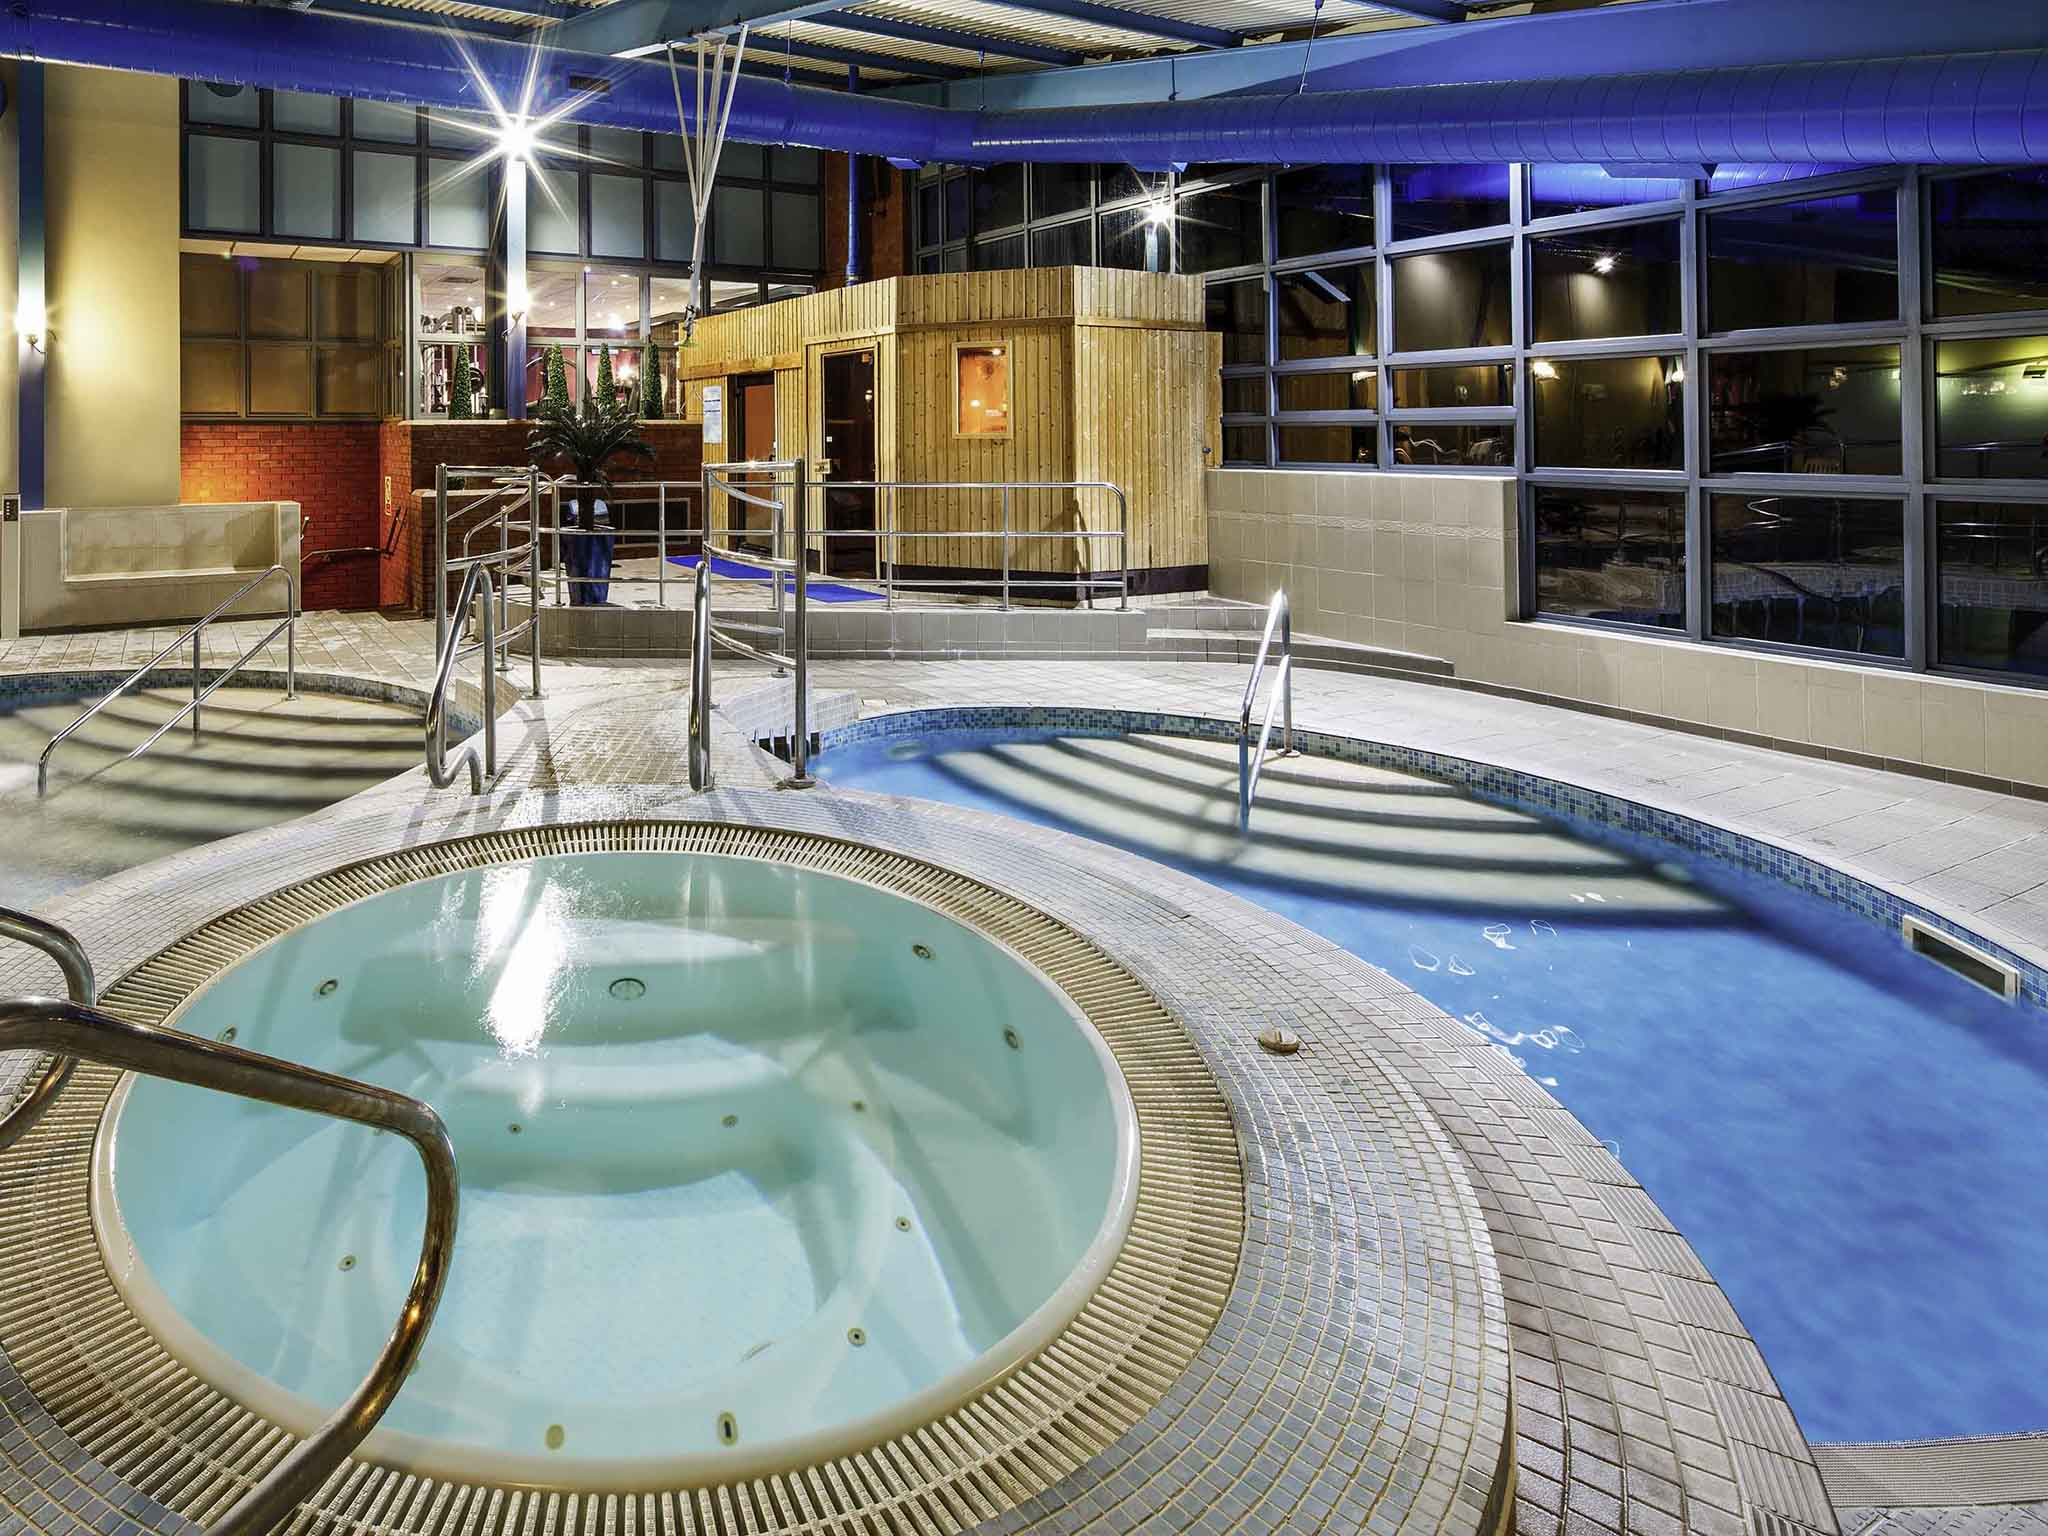 Llandudno swimming centre tripadvisor mercure chester abbots well quality hotel in chester for North wales hotels with swimming pools